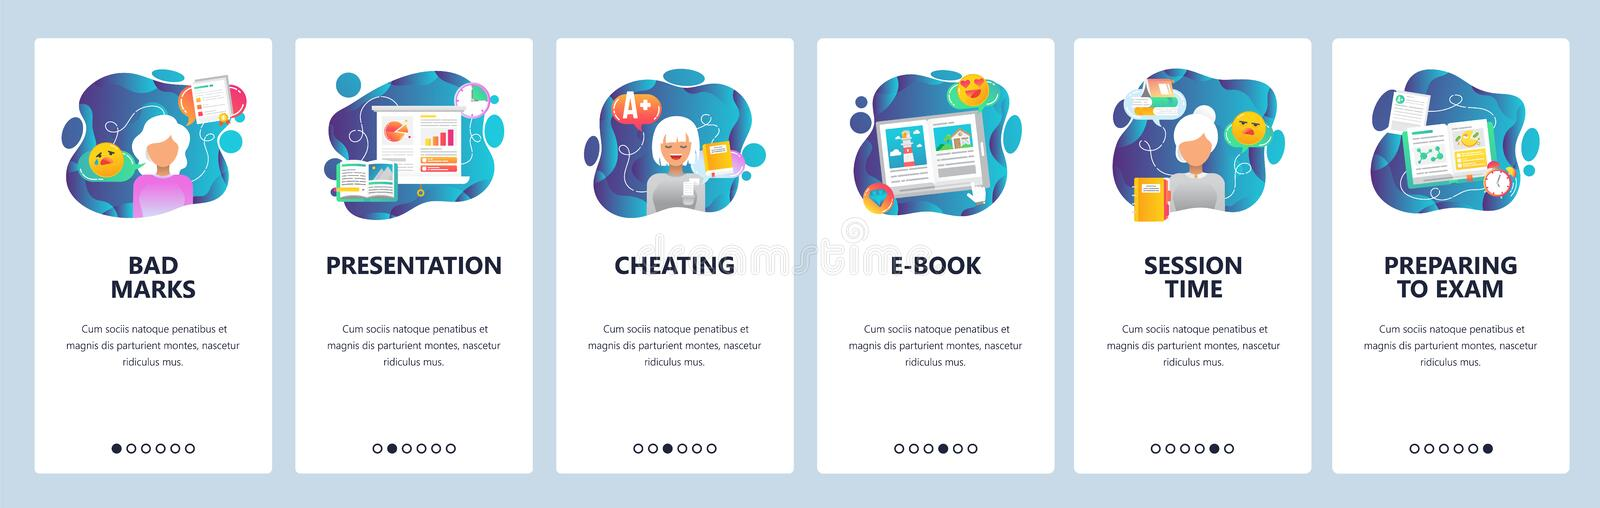 Mobile app onboarding screens. School and college education, exam cheating, session time. Menu vector banner template vector illustration